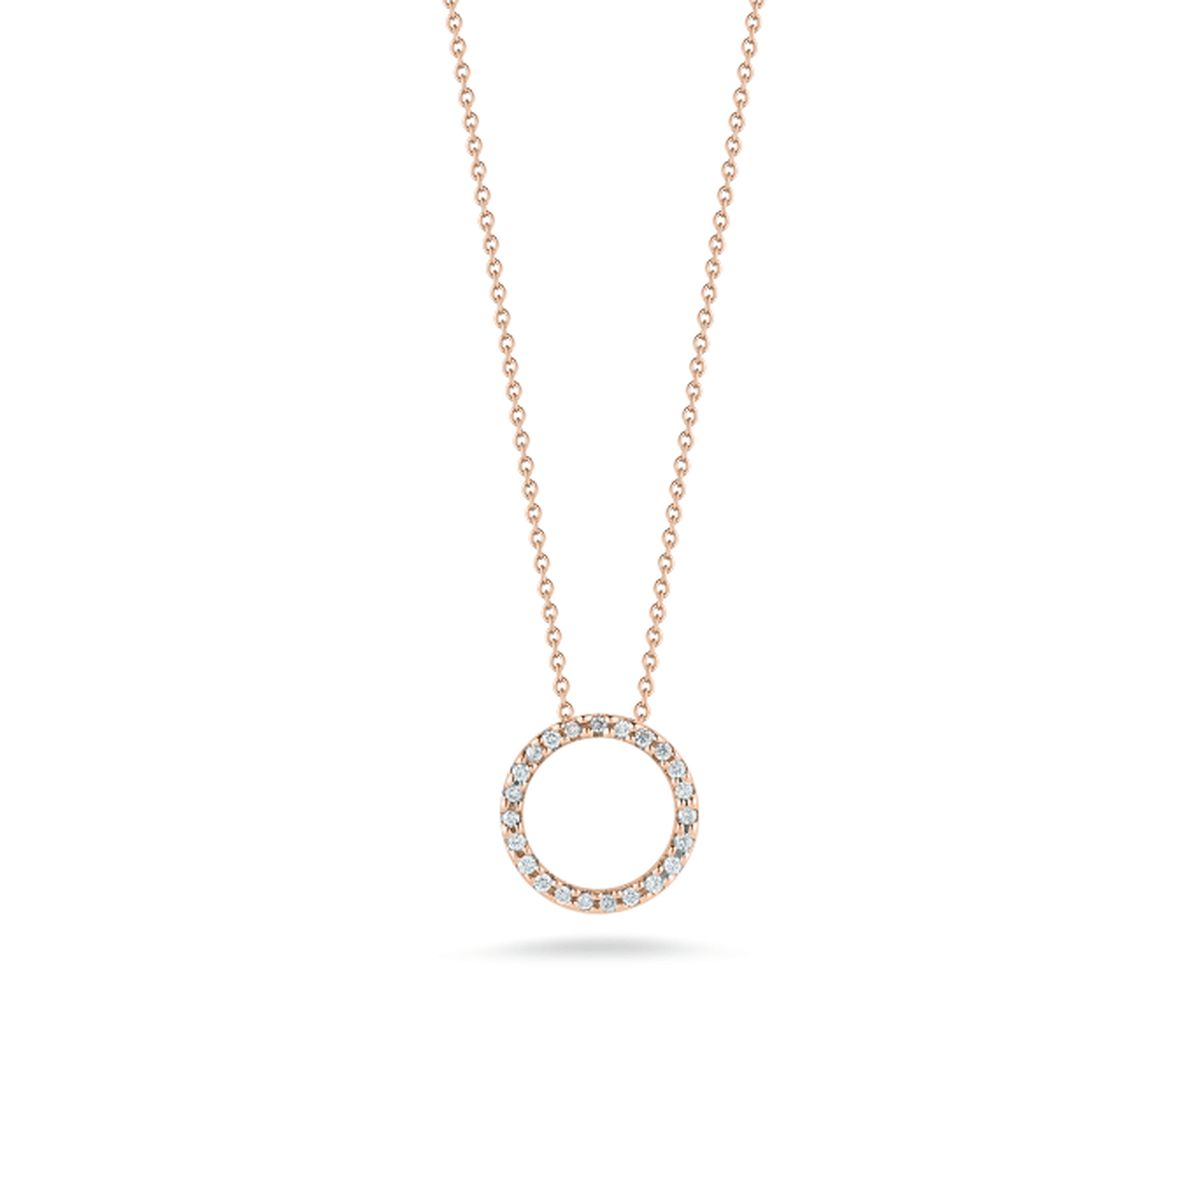 18k Rose Gold & Diamond Circle Necklace - 001258AXCHX0-Roberto Coin-Renee Taylor Gallery